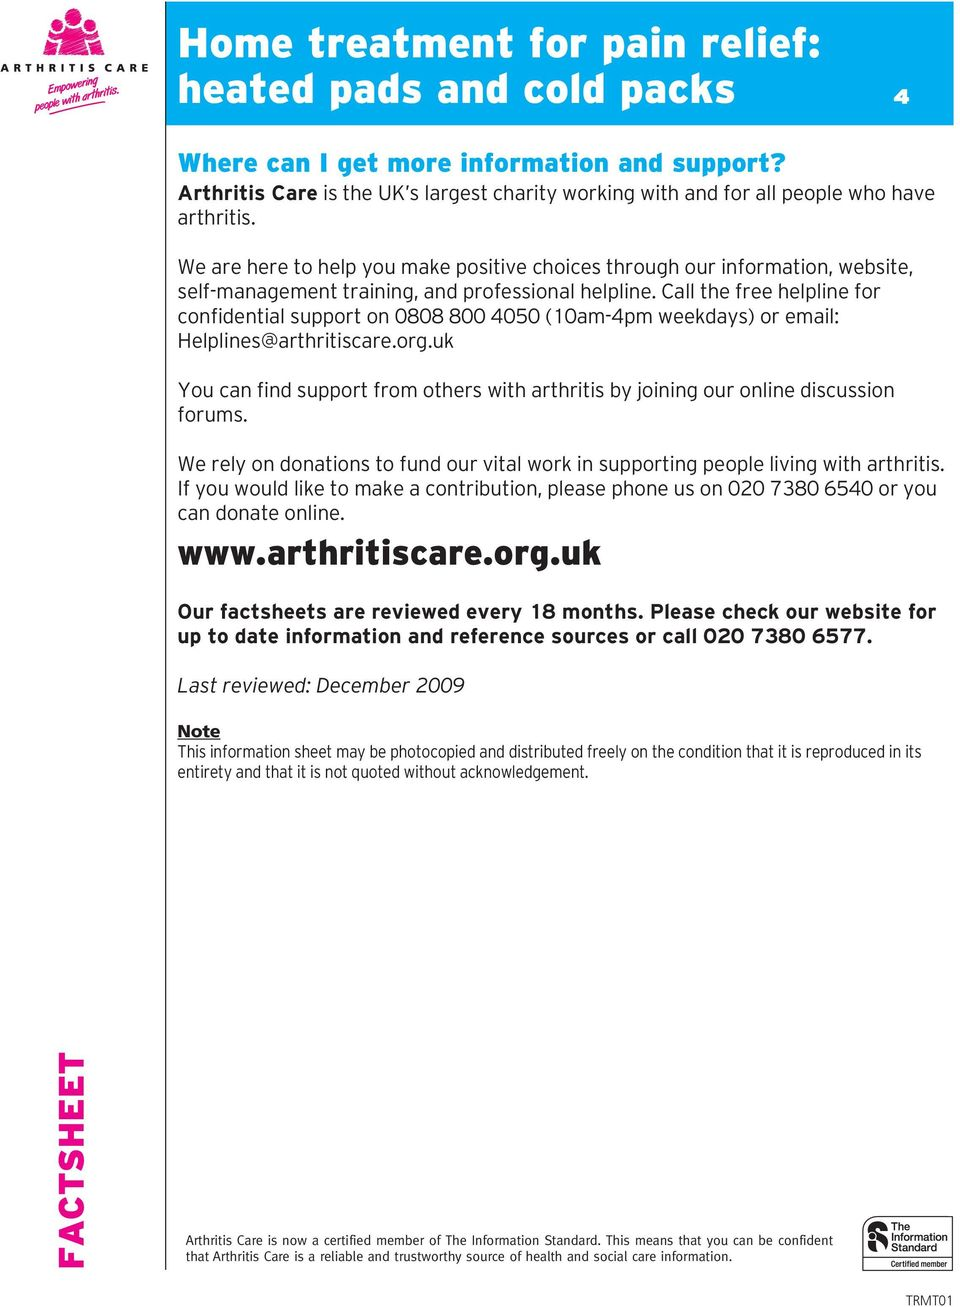 Call the free helpline for confidential support on 0808 800 4050 (10am-4pm weekdays) or email: Helplines@arthritiscare.org.